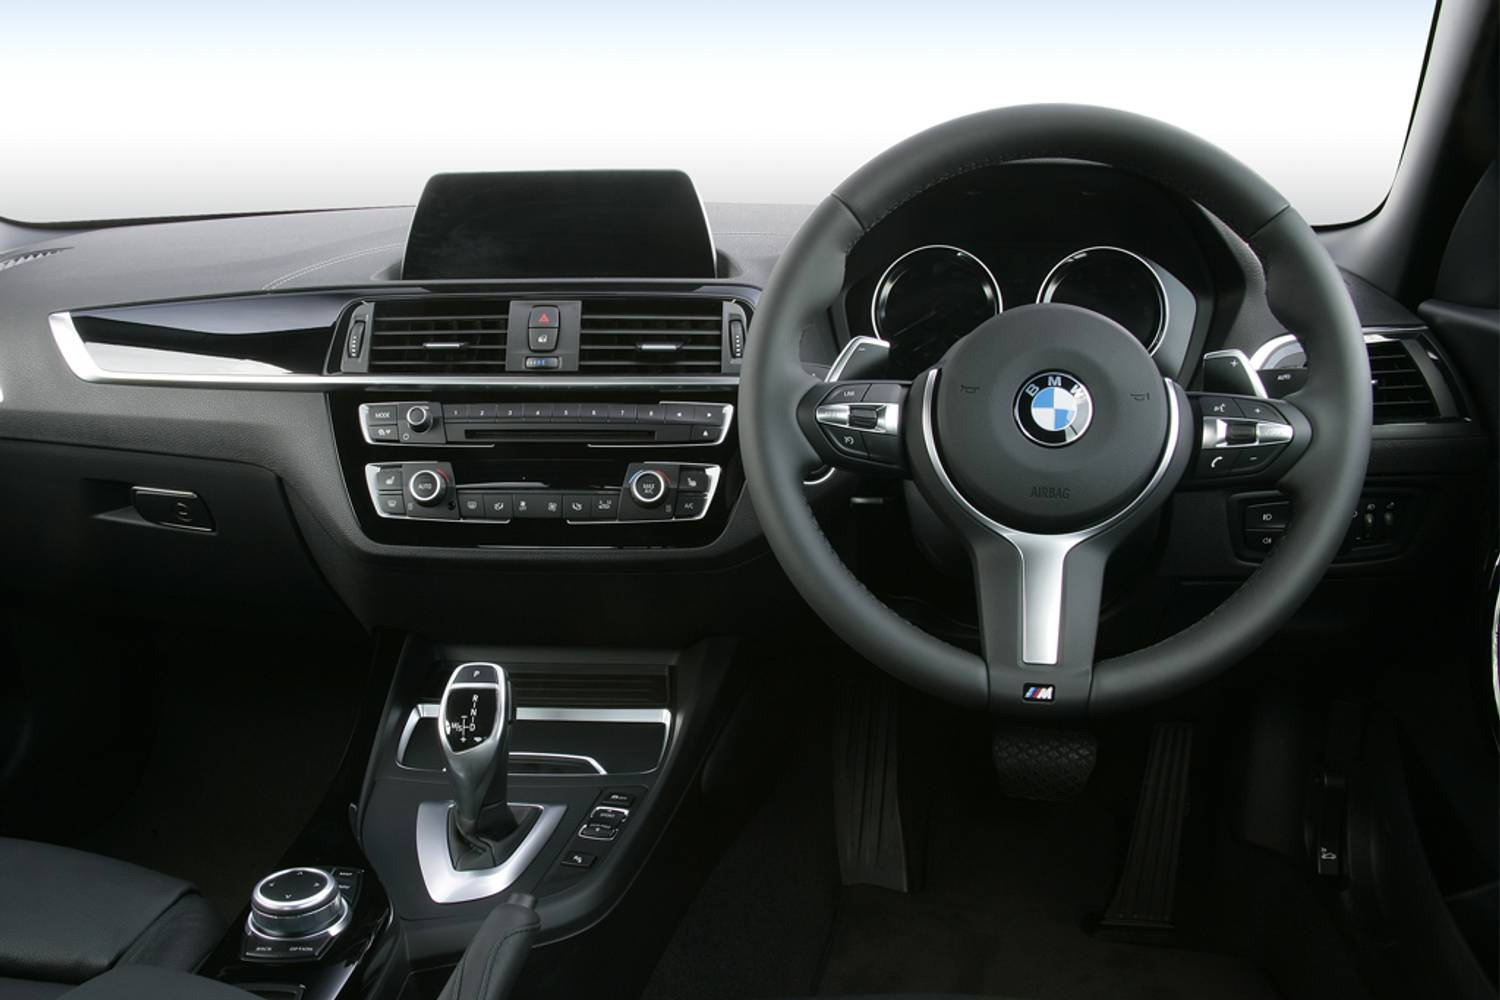 BMW 2 Series Convertible 2dr [Nav] interior